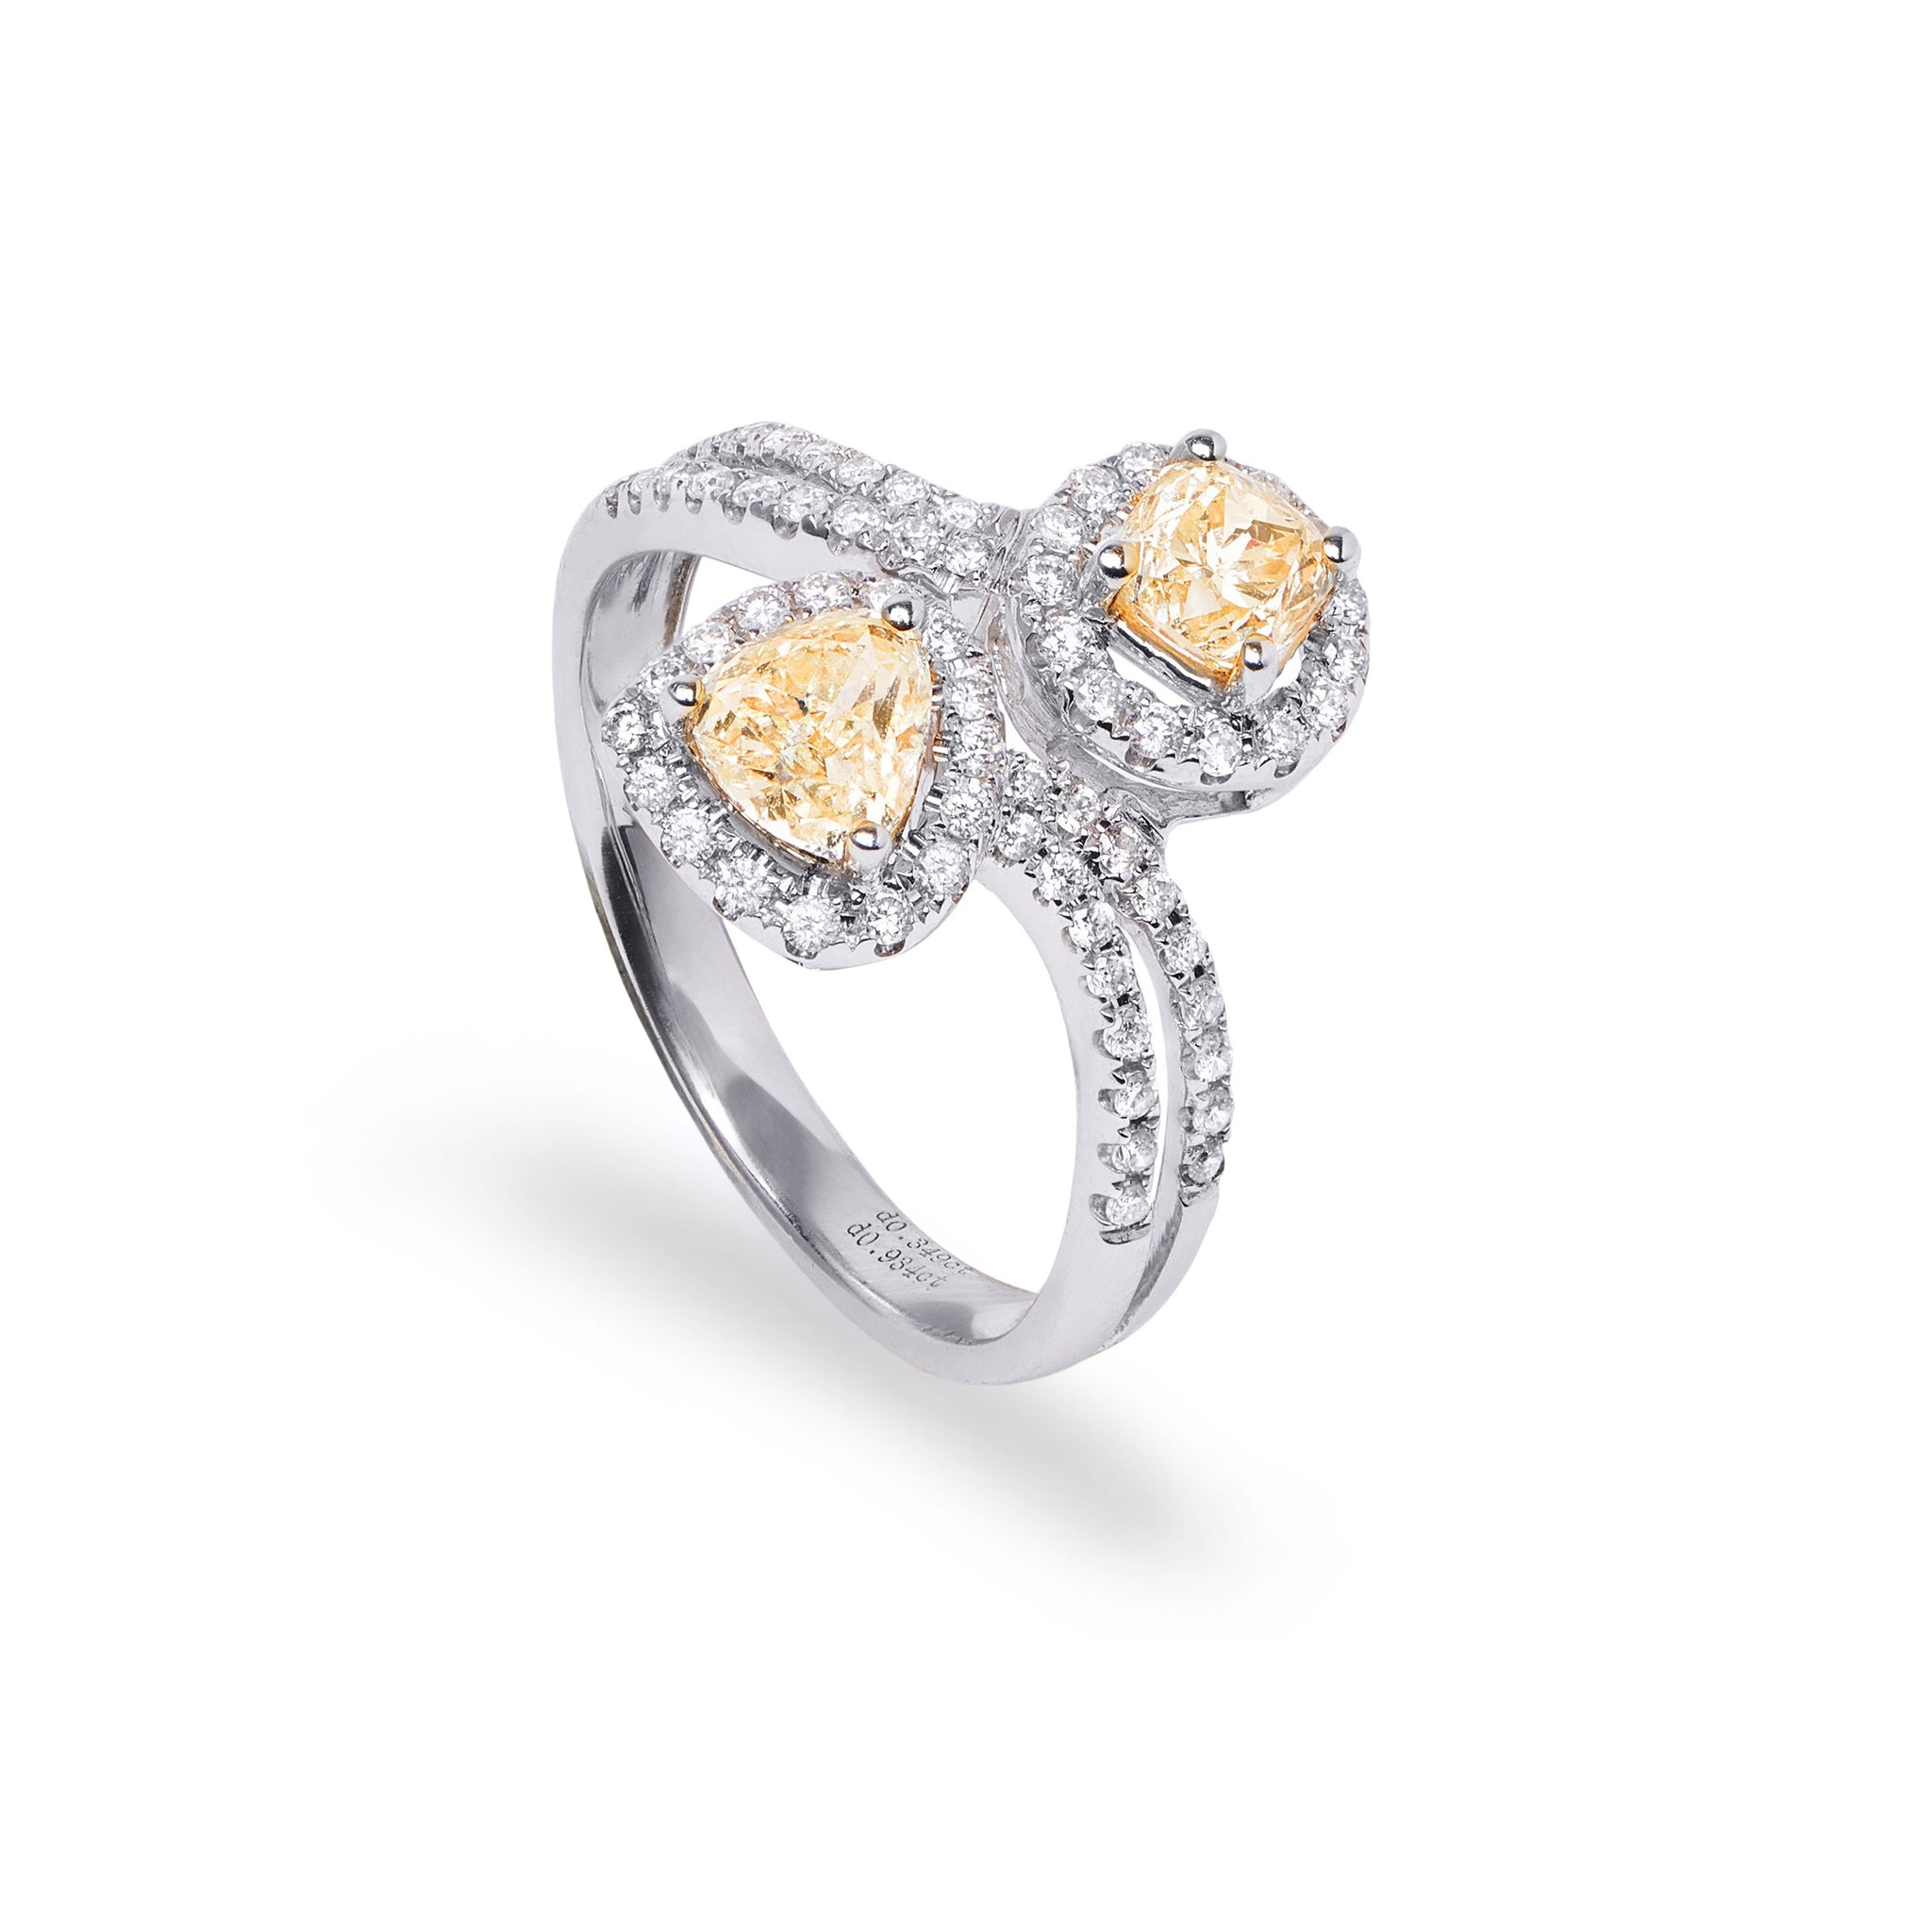 'Toi et Moi' Fancy Yellow Diamond Ring